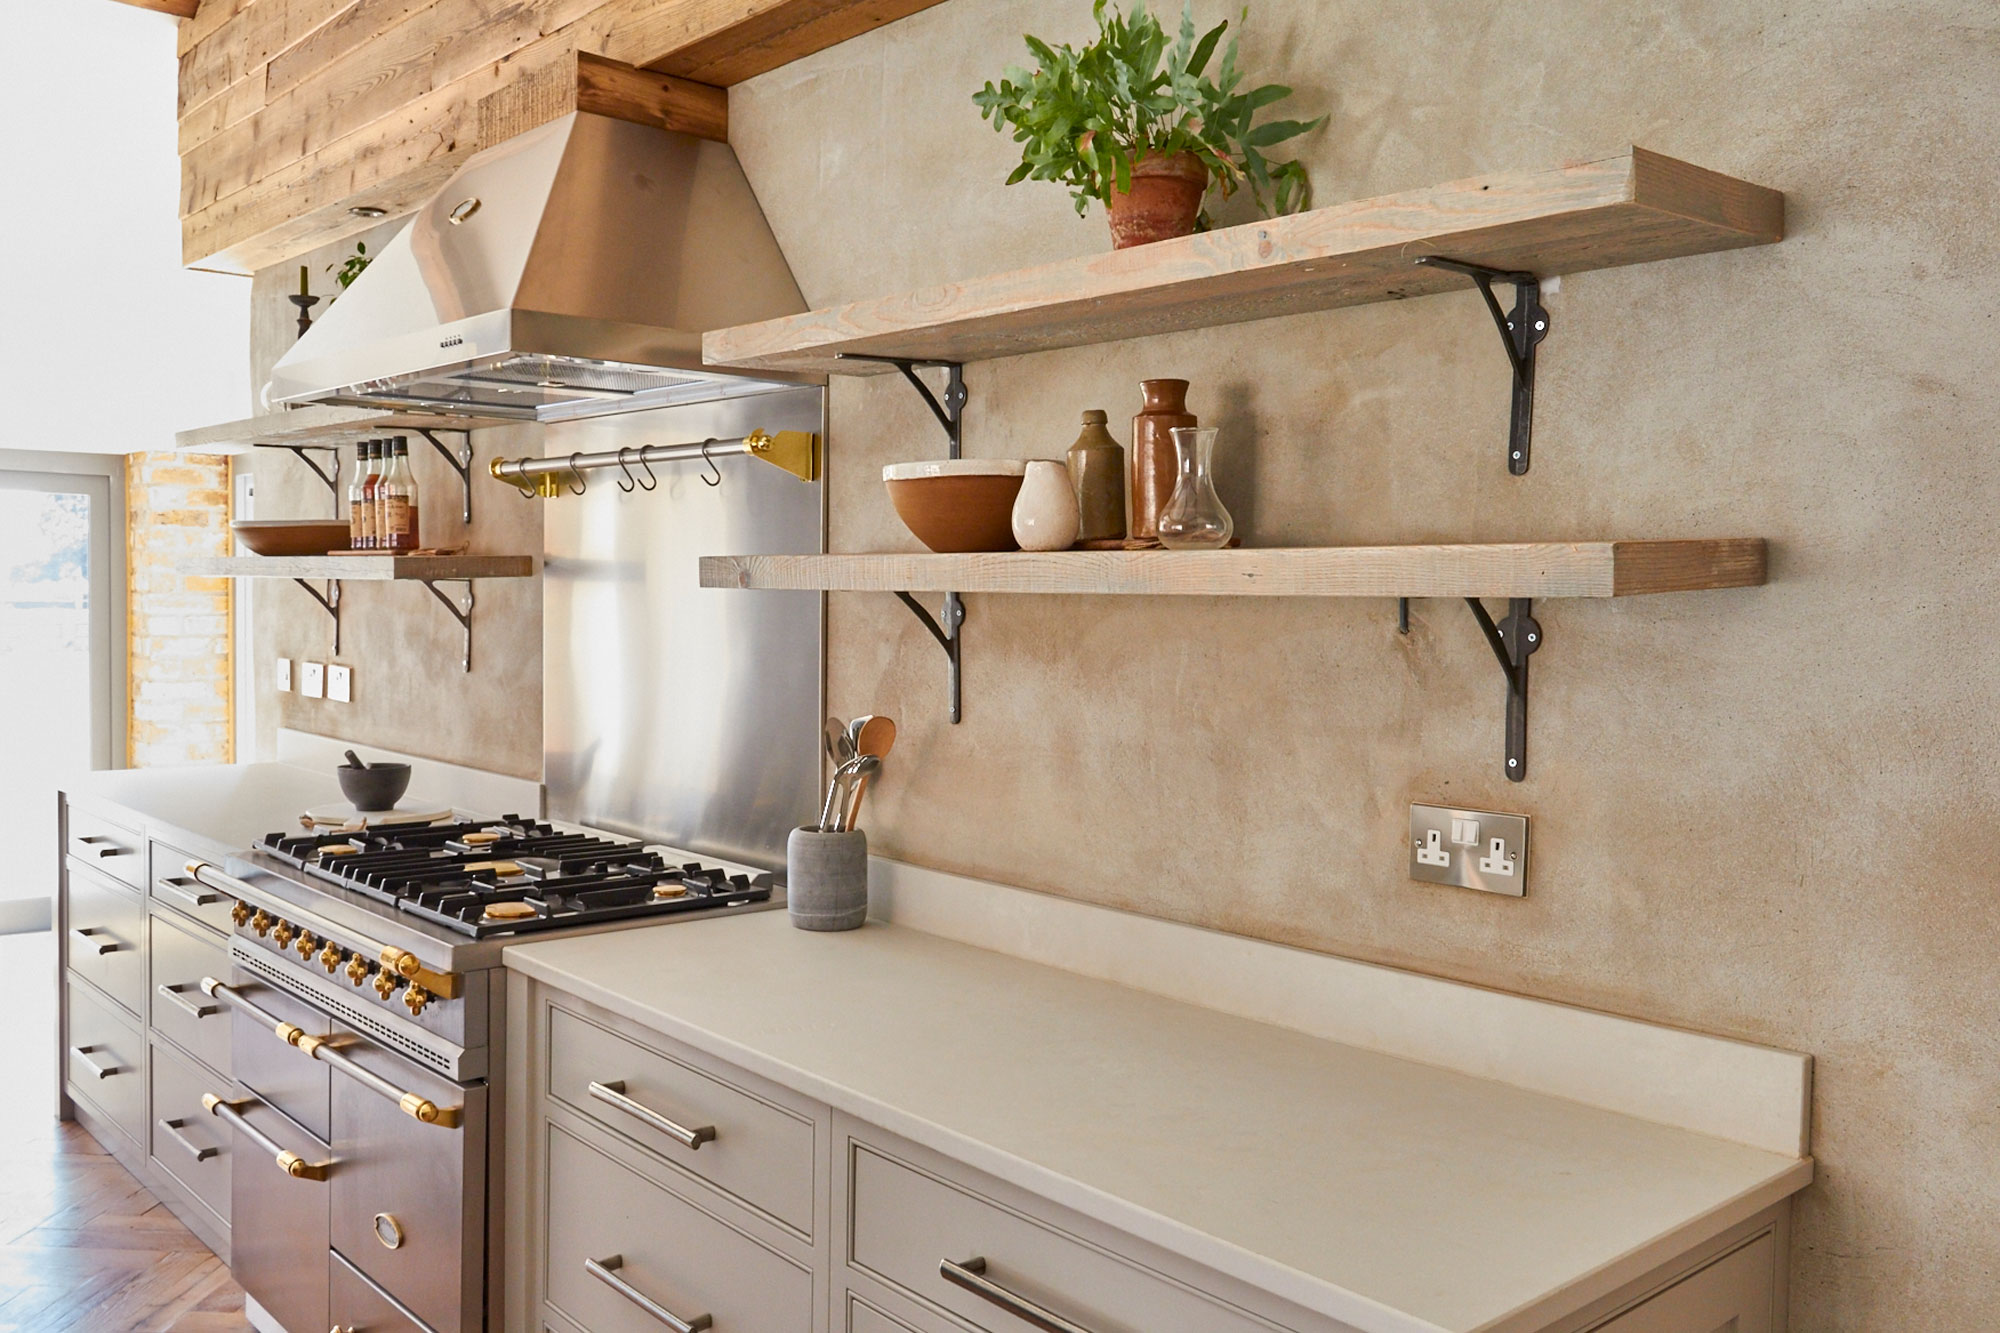 Rustic open shelves above Caesarstone white worktop and bespoke kitchen pan drawers